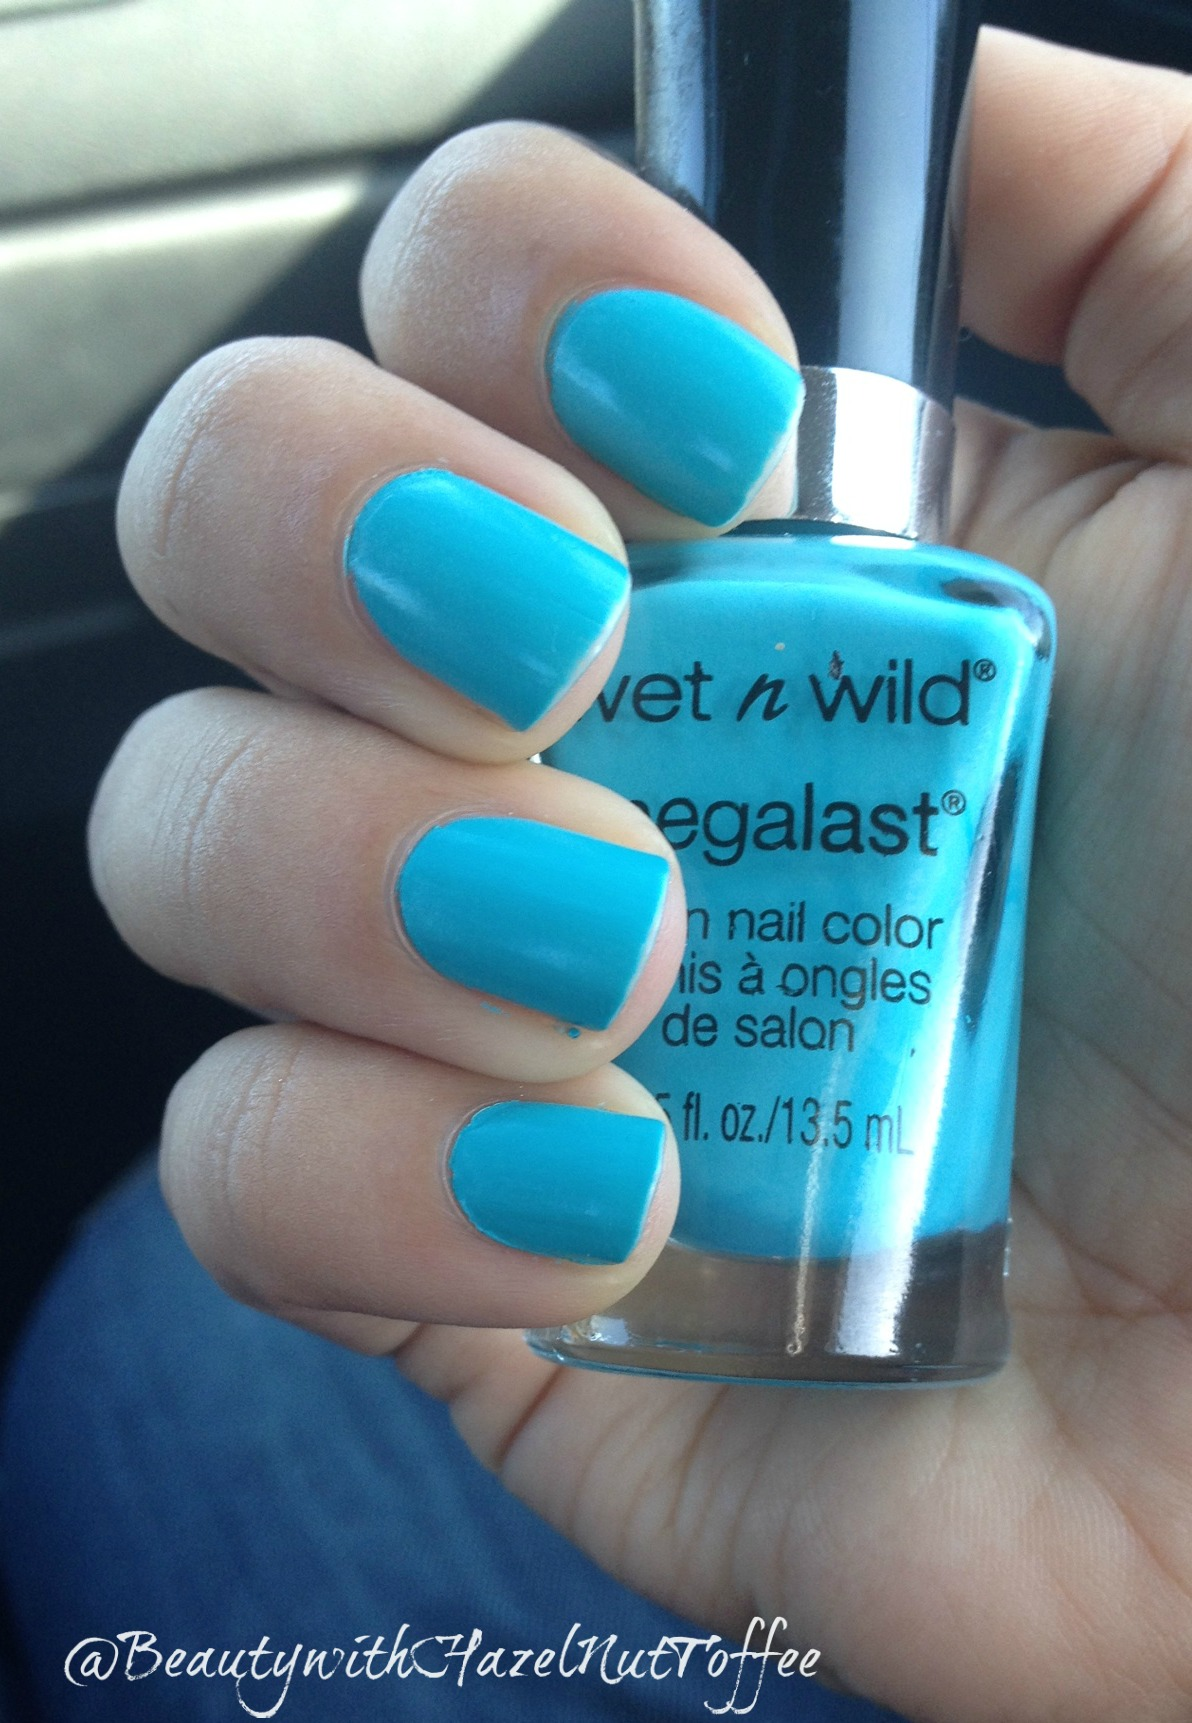 Wet N Wild Blooming Beauty Bites Megalast Salon Nail Color Candylicious I Need A Refresh Mint Wnw